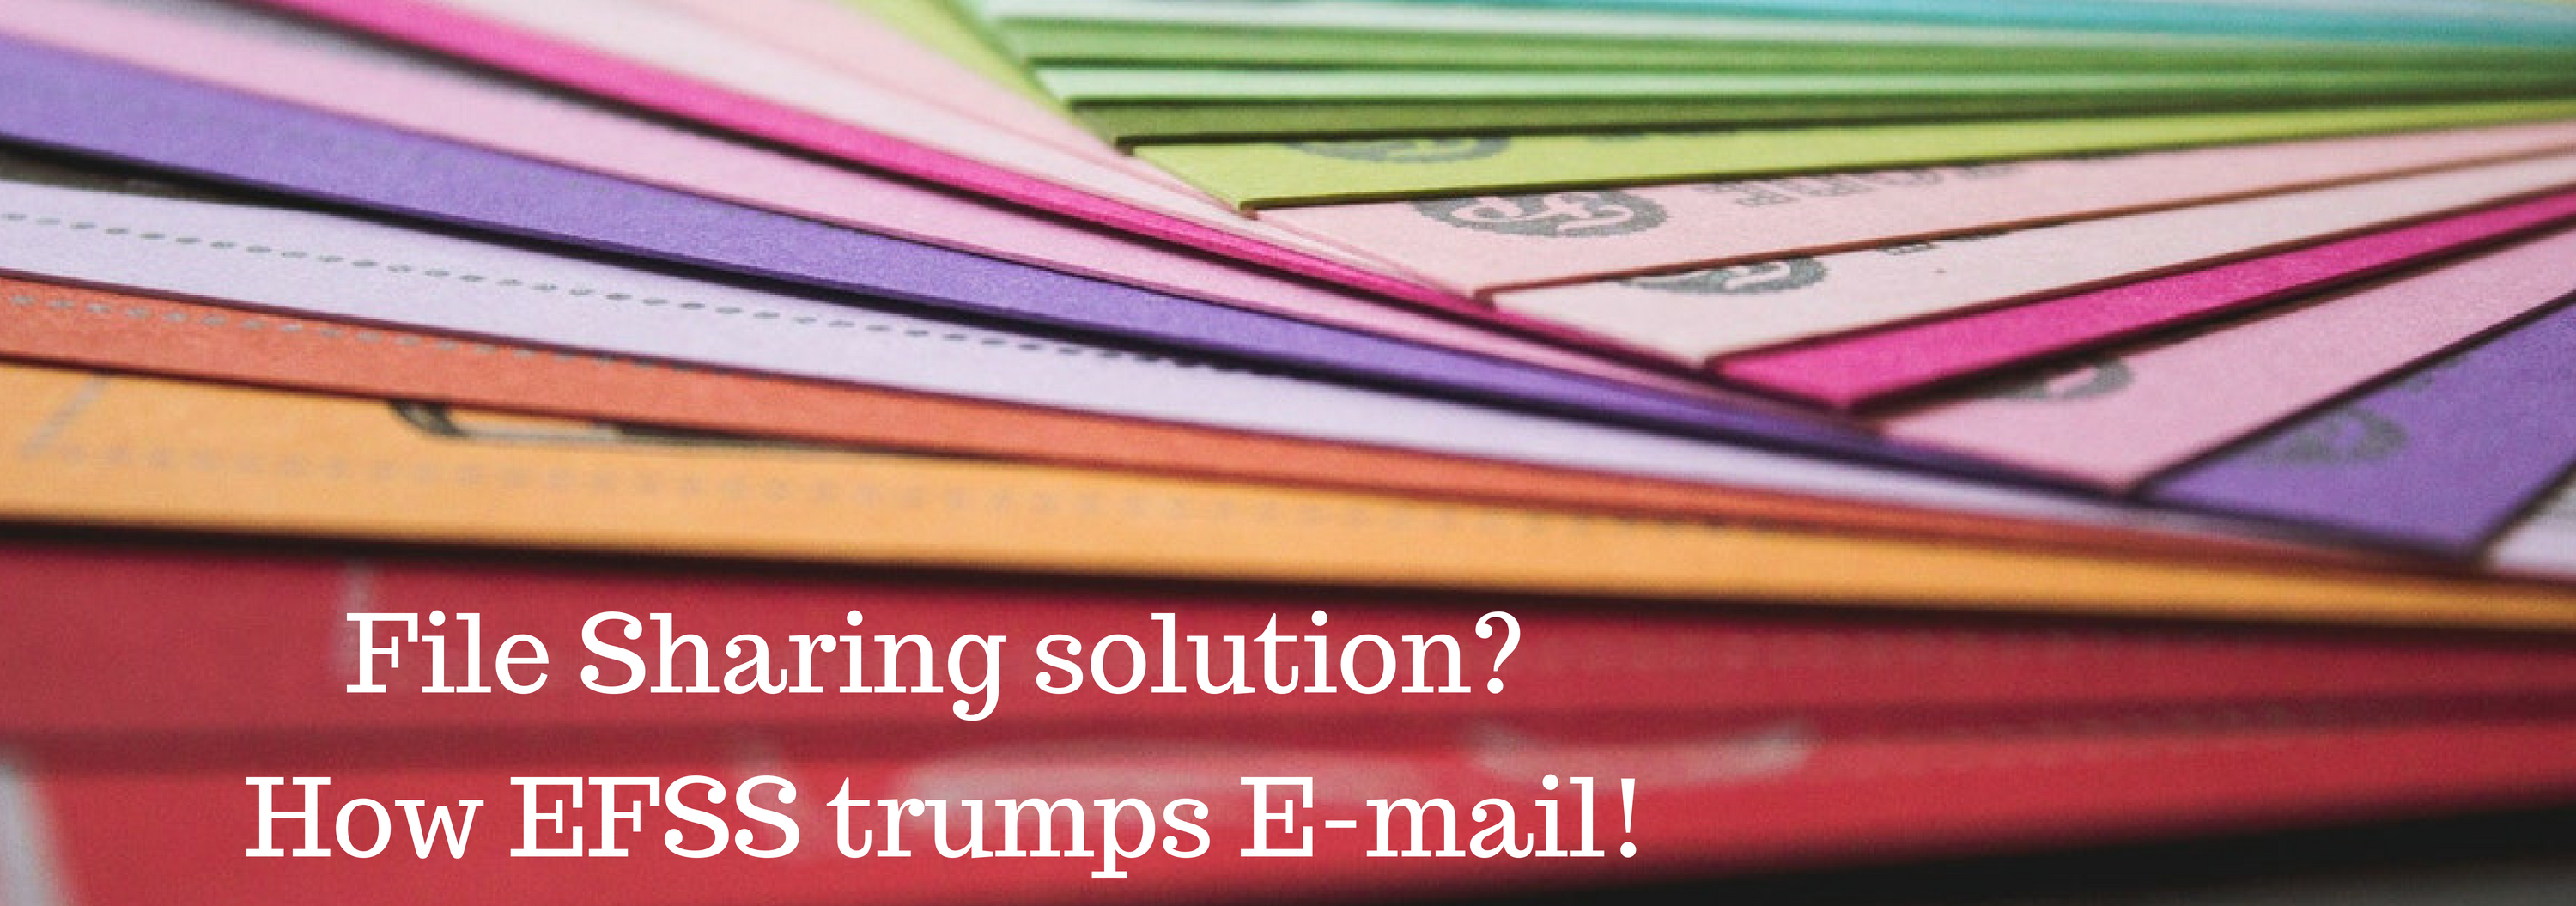 EFSS trumps email to share files